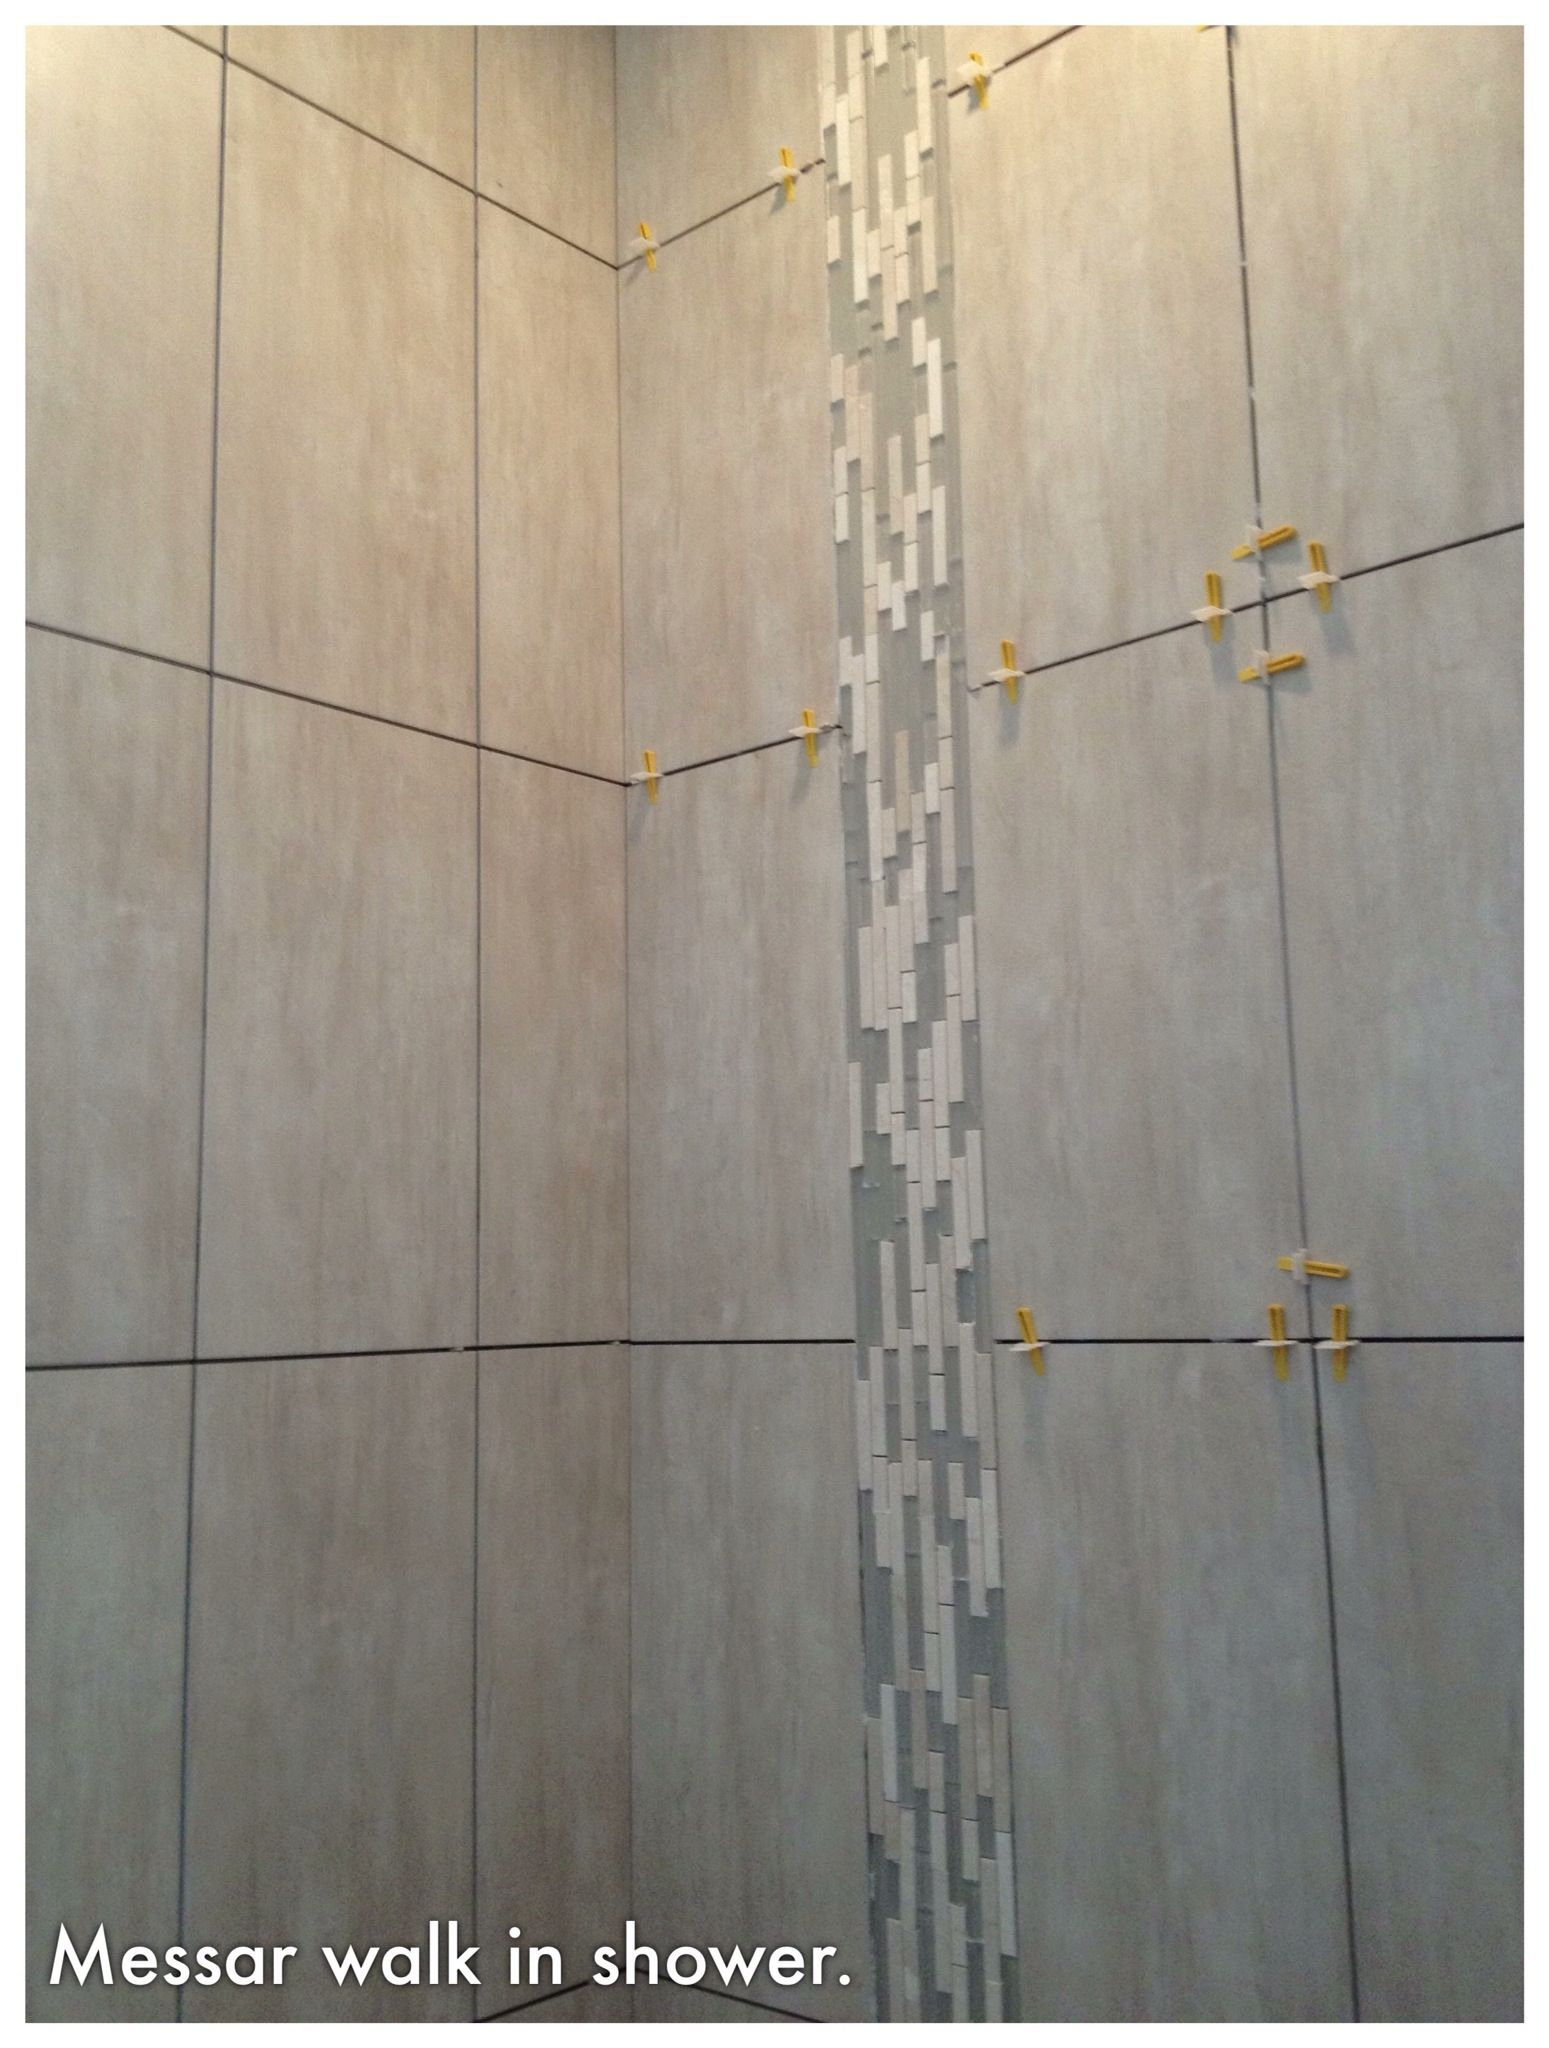 Walk in shower 12 x 24 tiles vertical waterfall glass for 12 x 24 glass tile